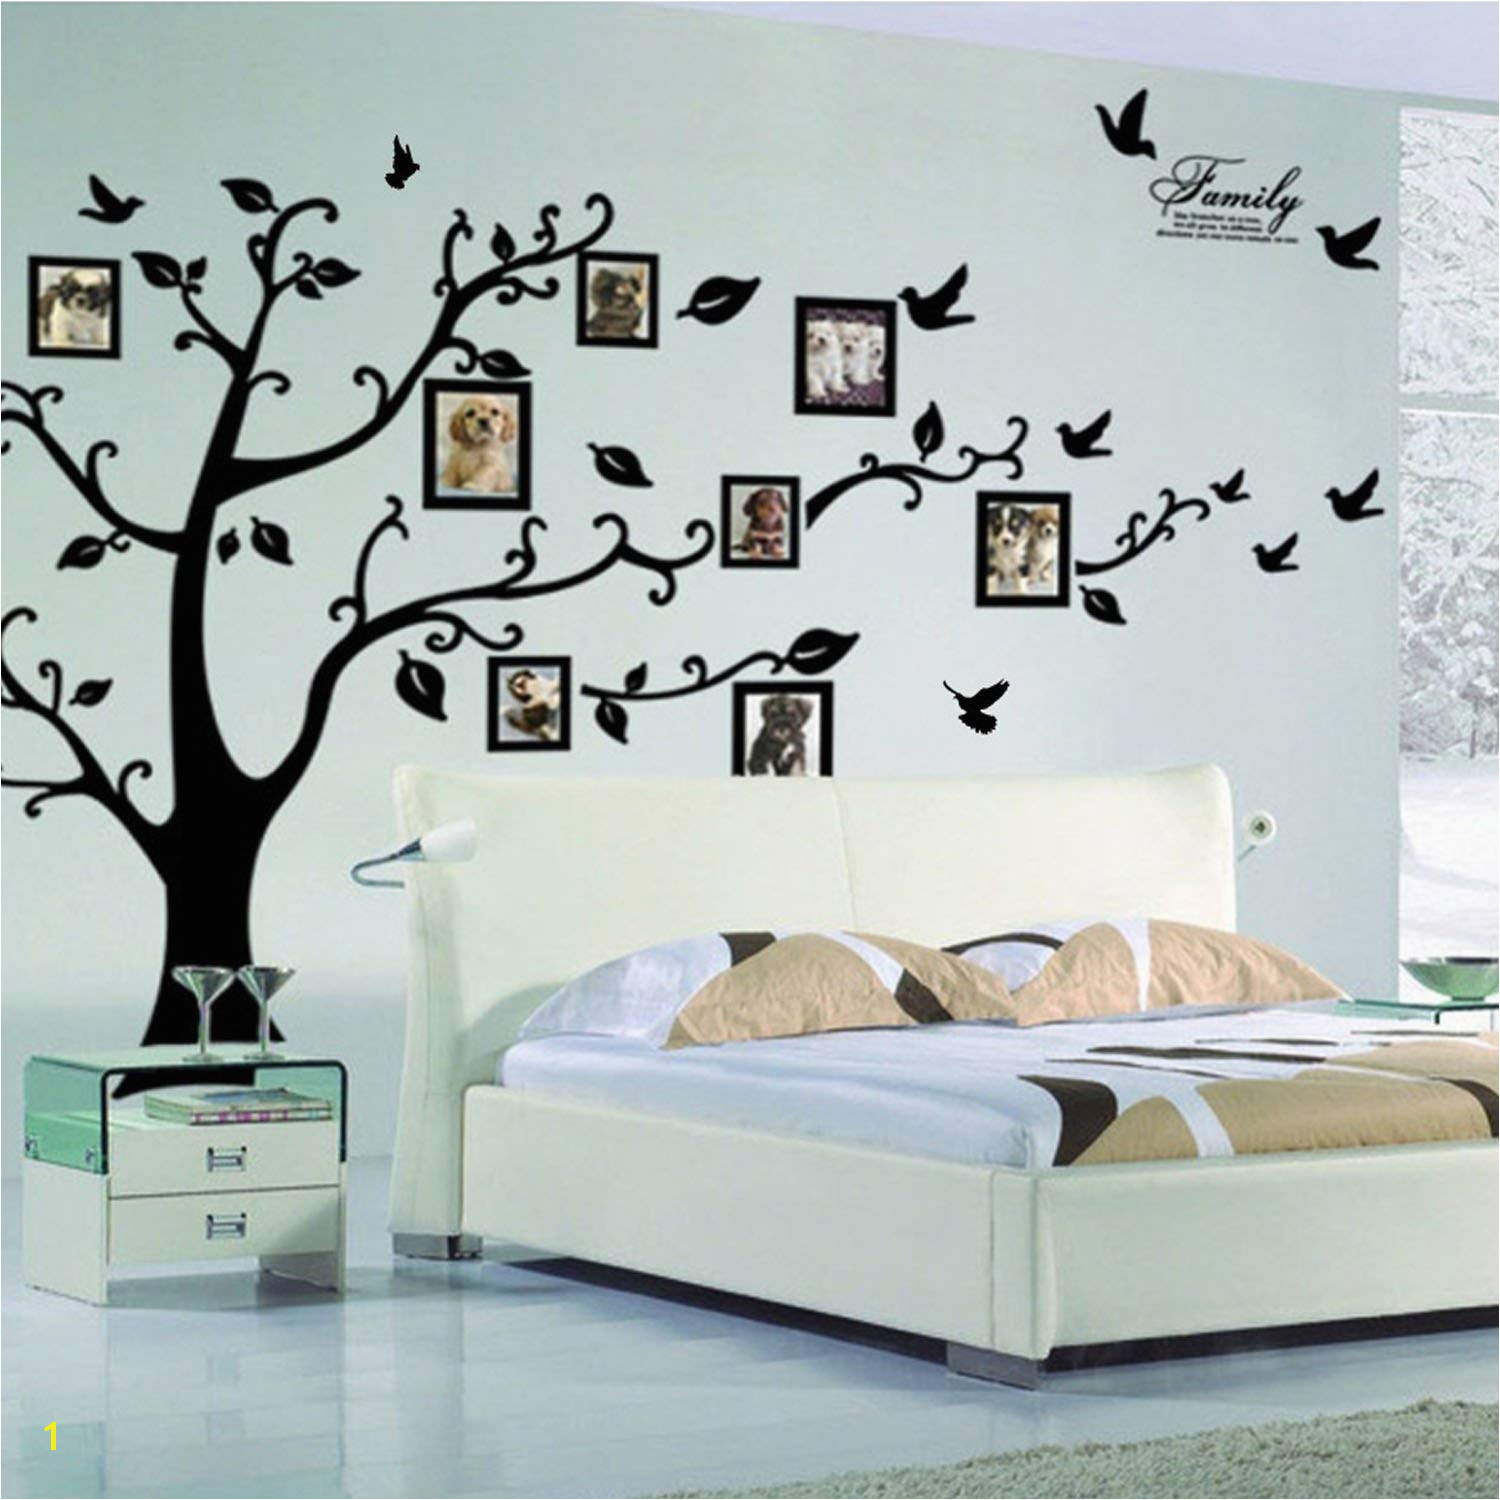 X DIY Family Tree Wall Art Stickers Removable Vinyl Black Trees Frames Wall Stickers Decals Home Decor Art Decals Sticker by Lisdripe Family